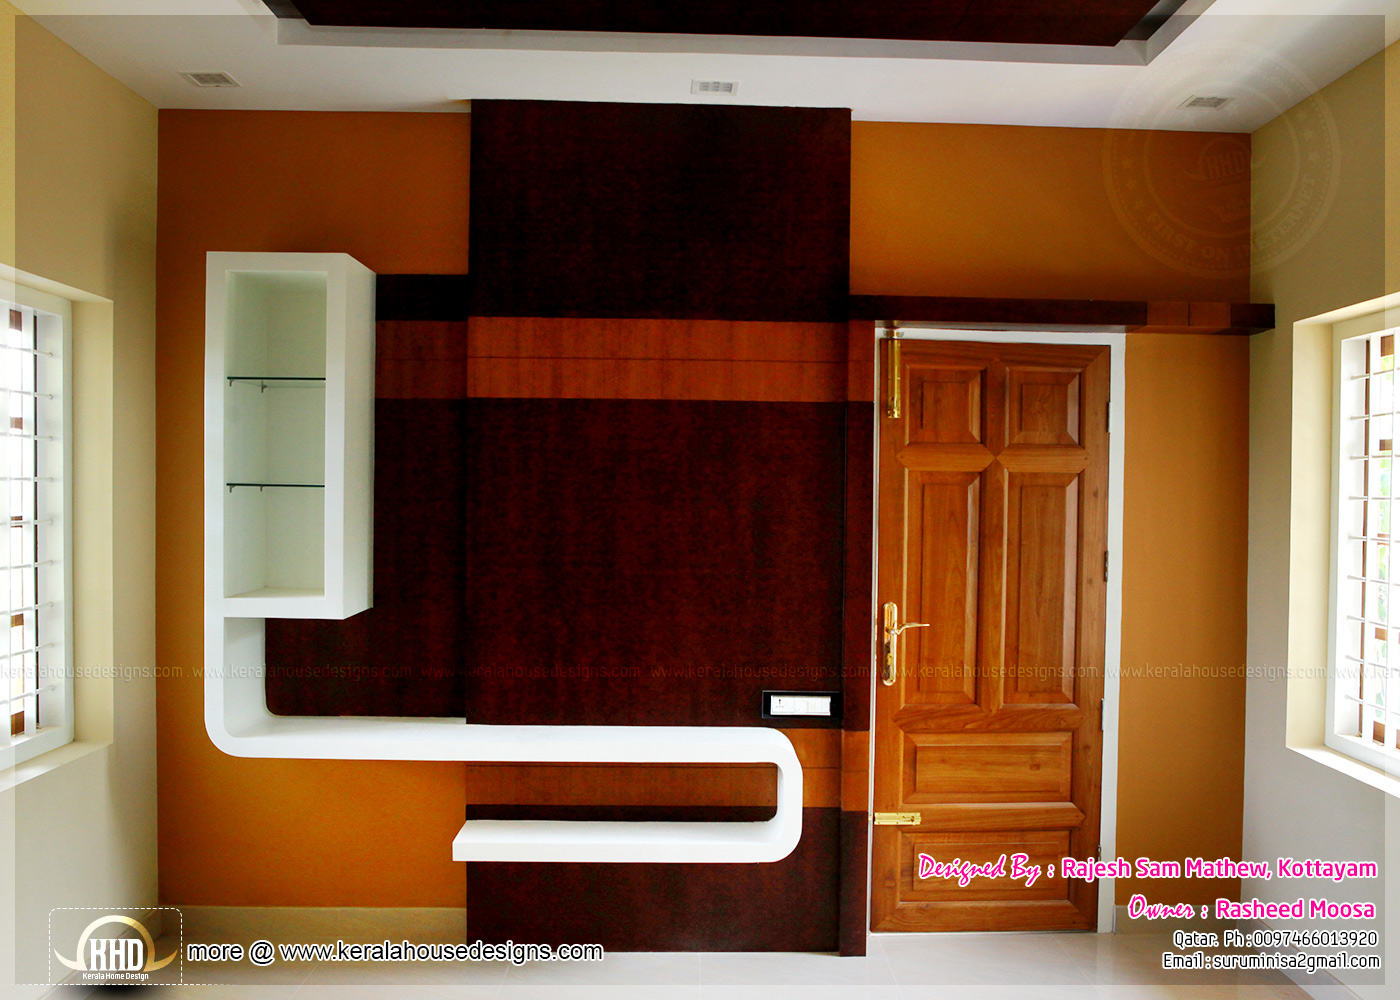 Living Room Interior Design In Kerala kerala interior design with photos - kerala home design and floor